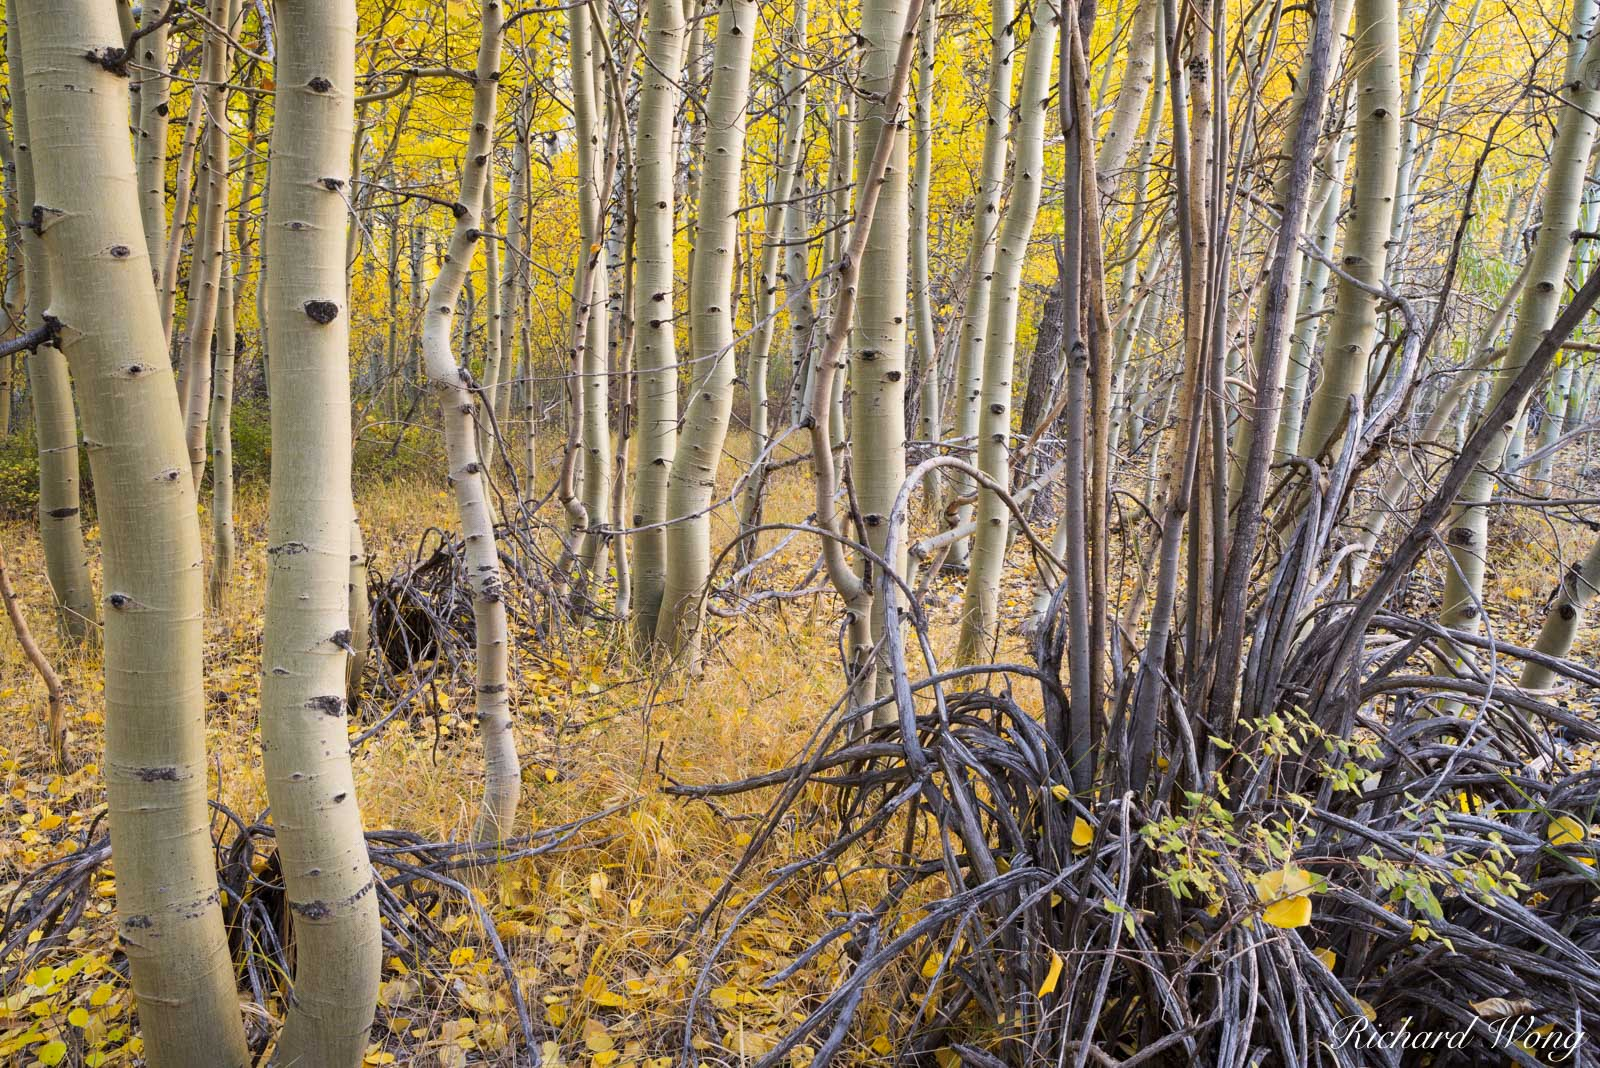 Aspen Trees in Fall Near Convict Lake, Inyo National Forest, California